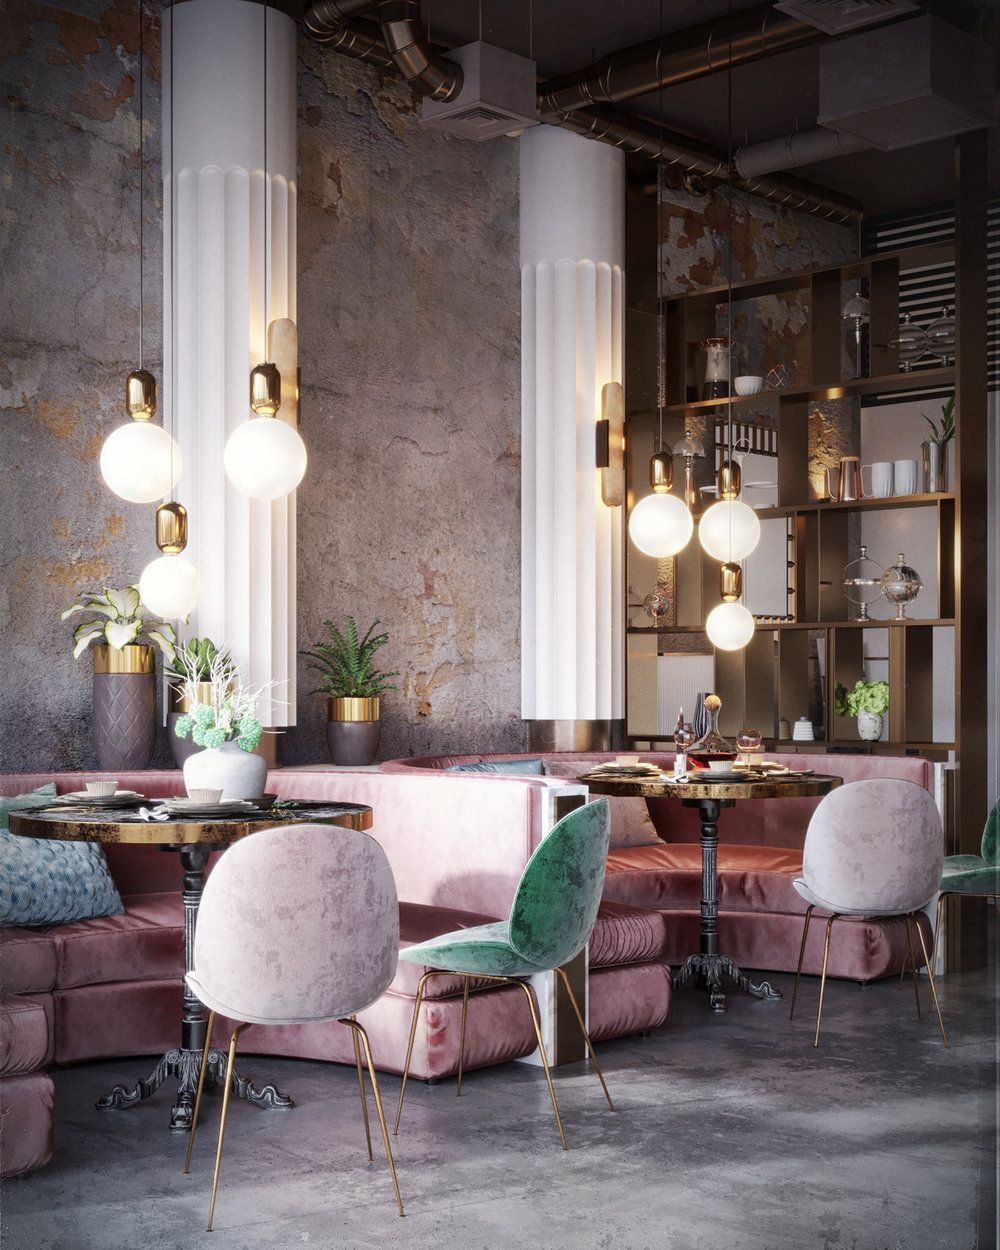 Wanderlusting contemporary restaurant design so pink